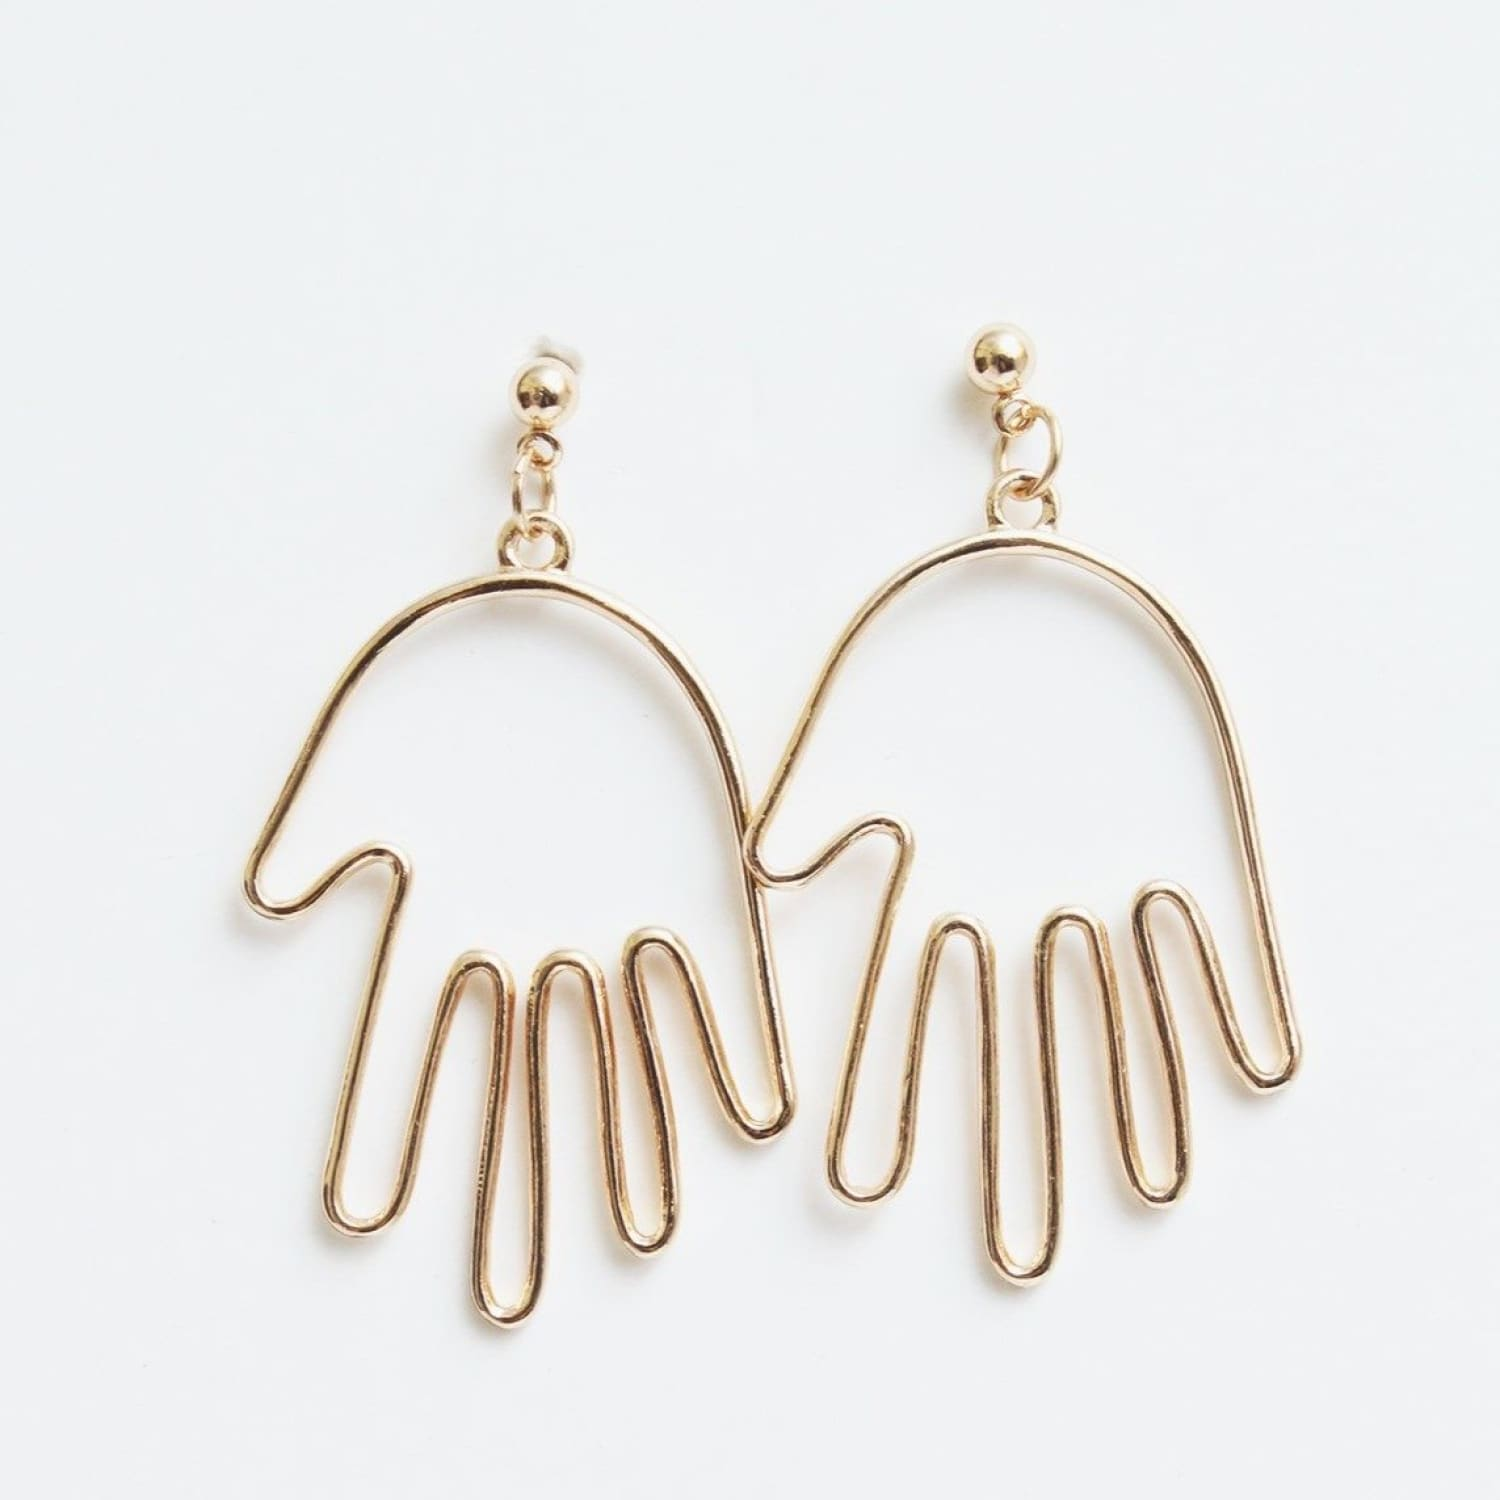 Hand Earrings Earrings, Gold, Hands, Pulp Girls, Wire